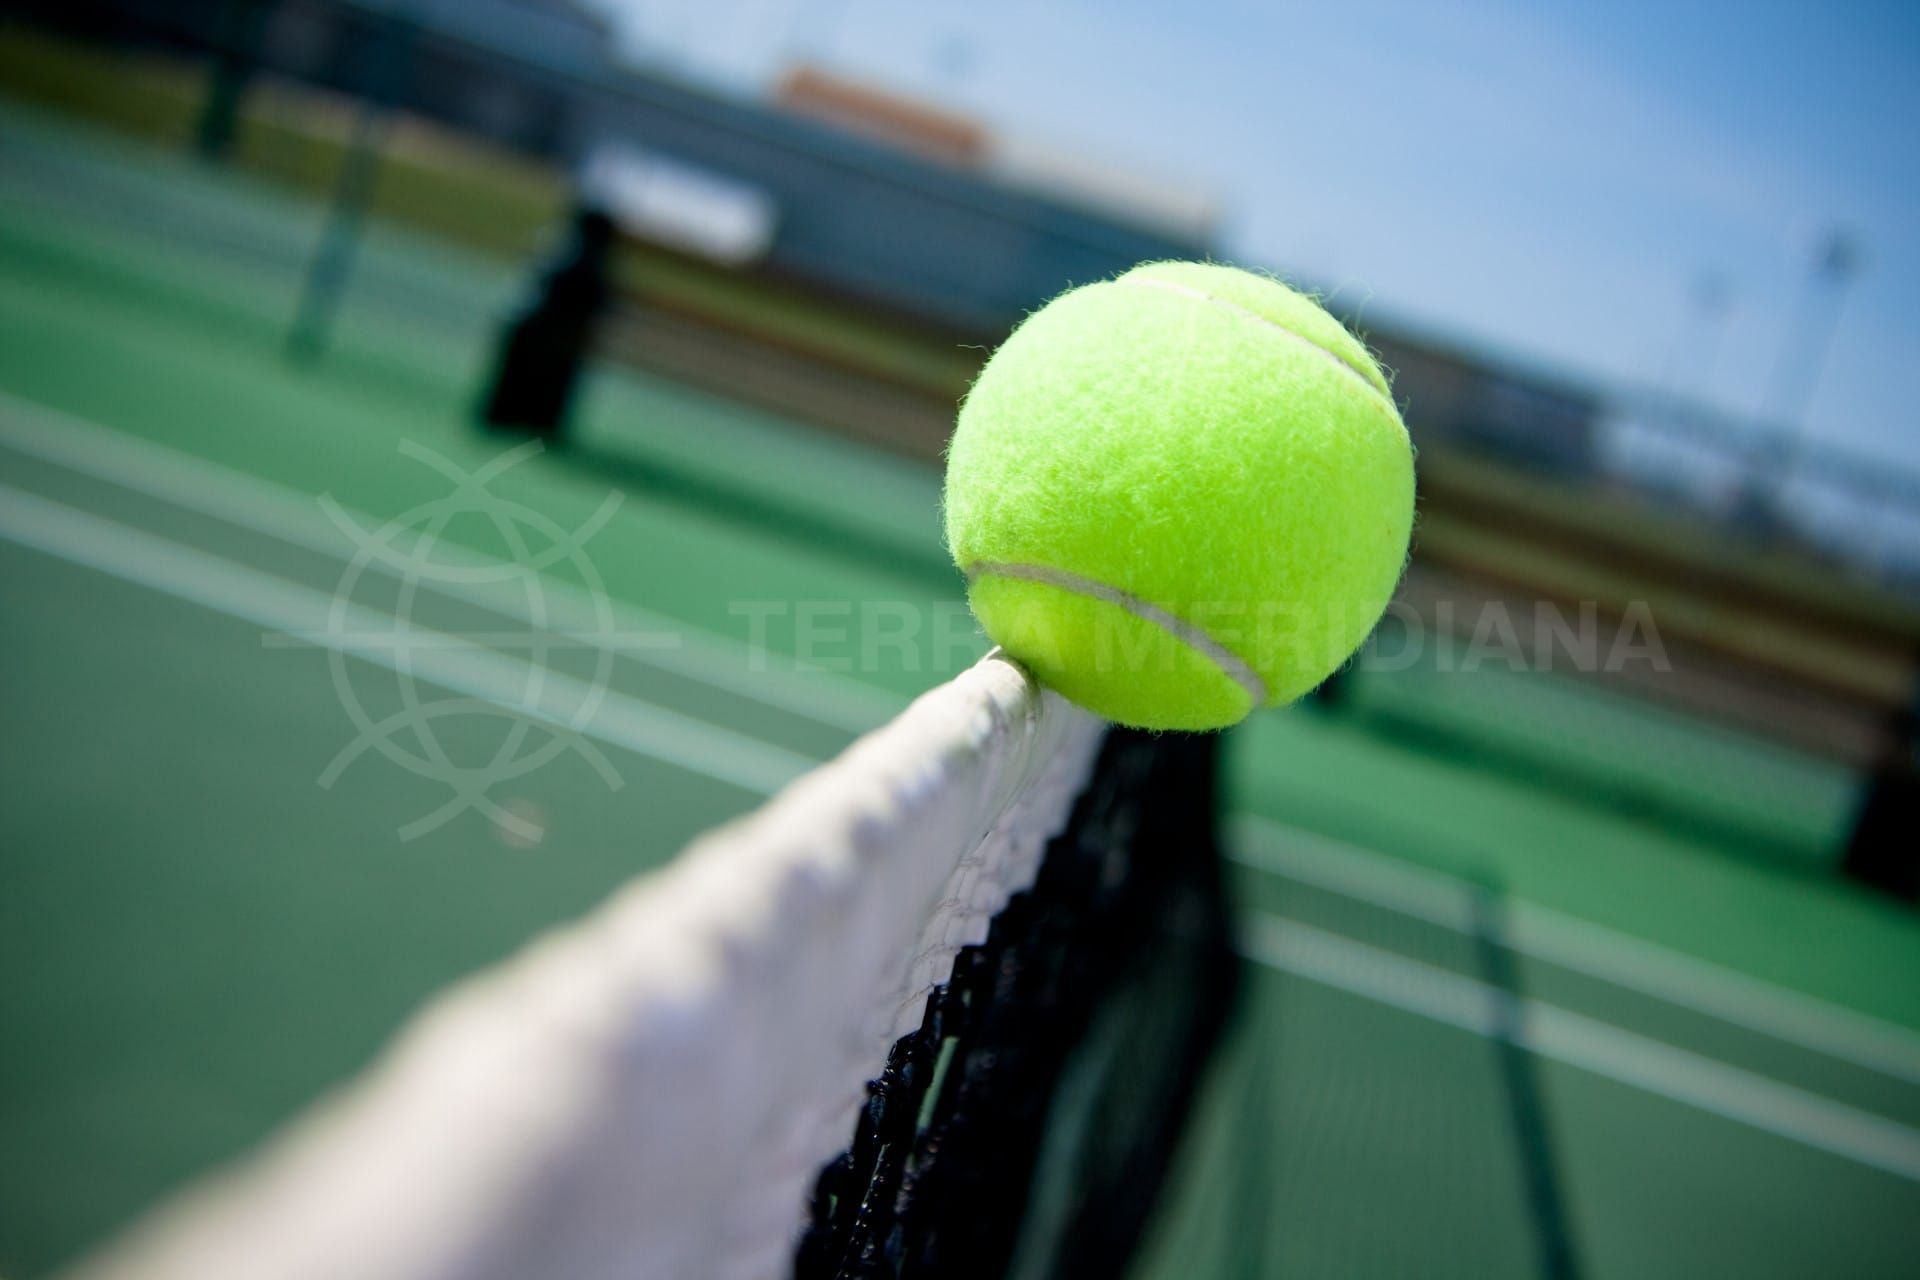 New Balls Please! Marbella and Estepona's first class tennis clubs